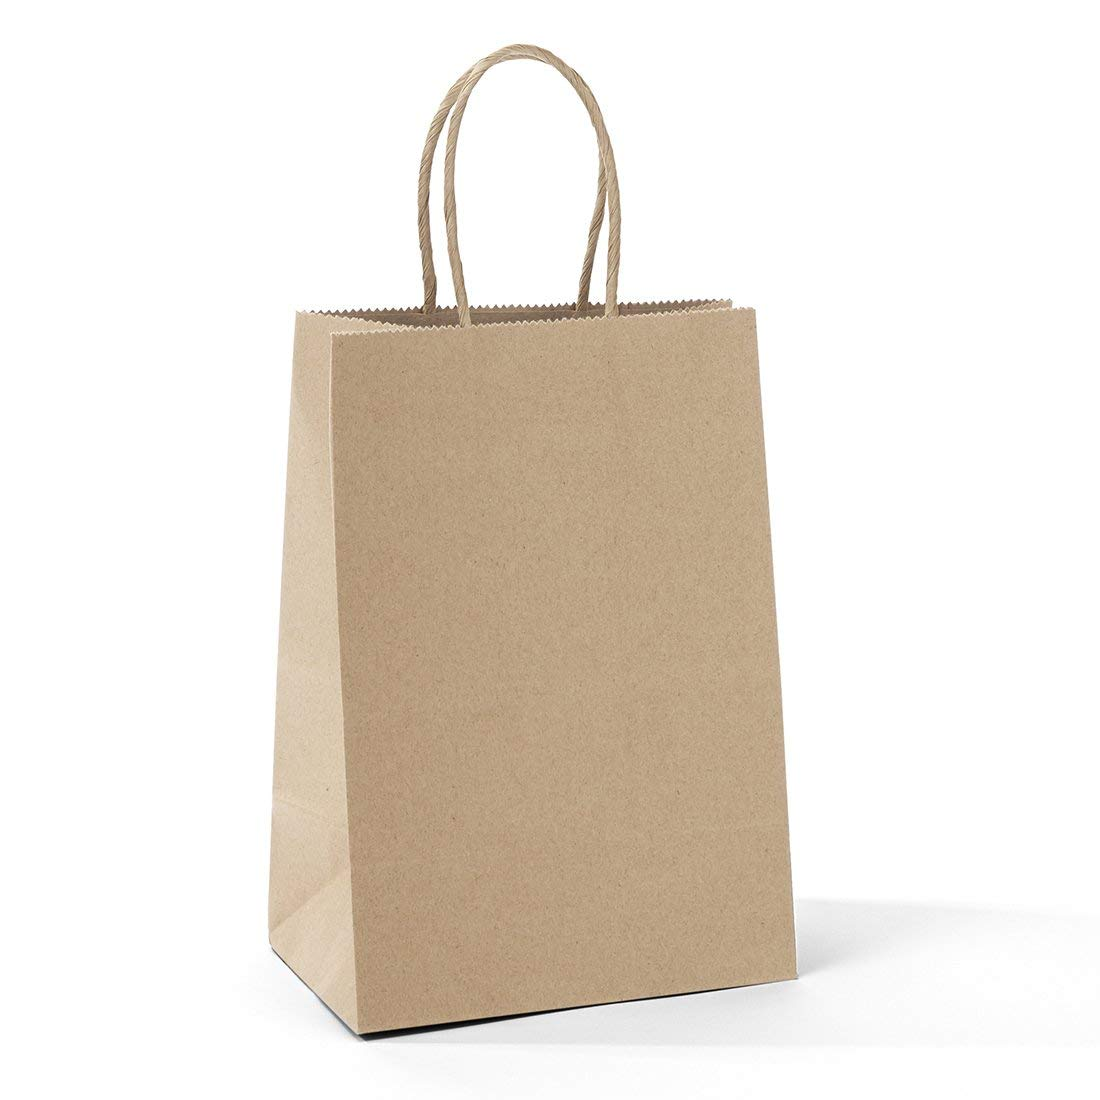 Halulu Brown Kraft Paper Bags - Gift Party Bags with handles - 25pc 5x3.75x8 Shopping Bags H006